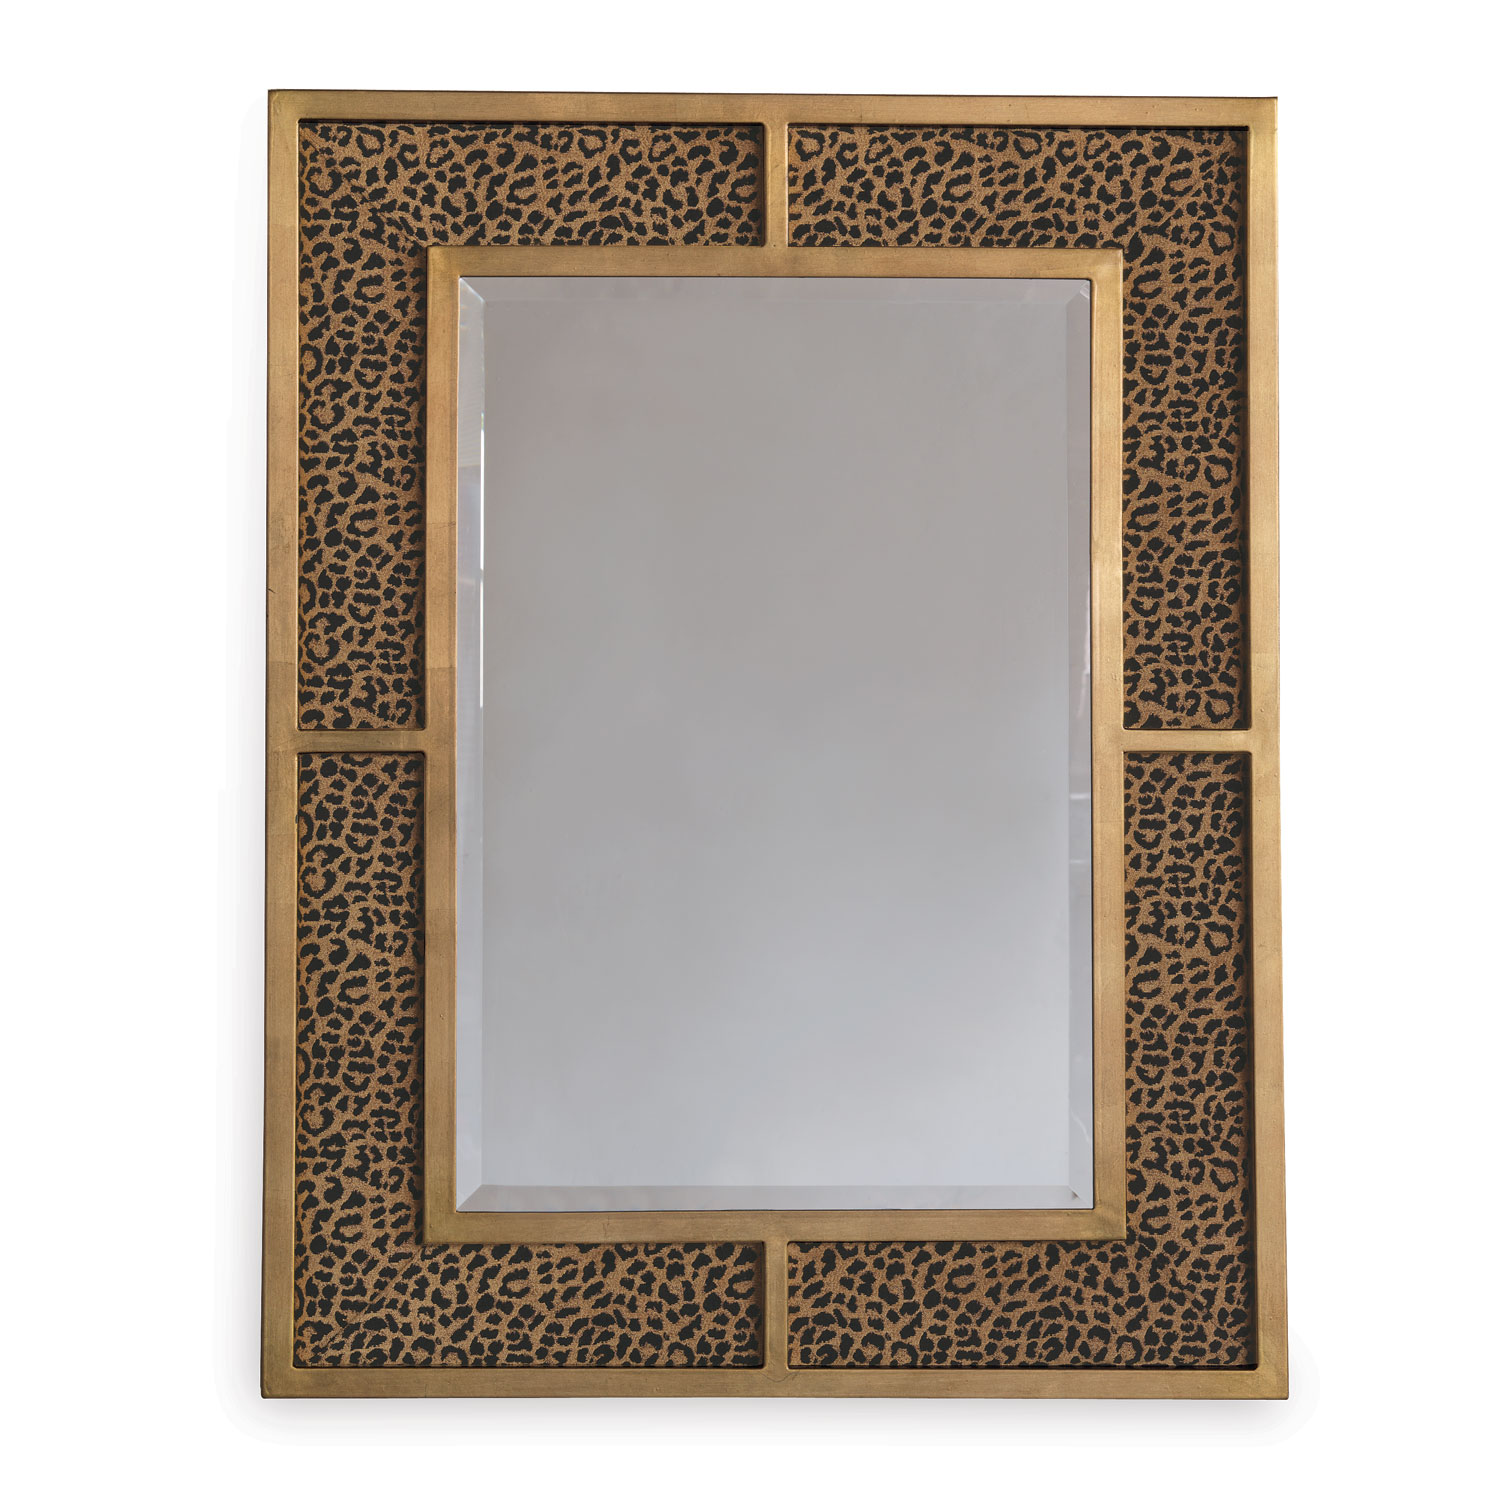 Wall Decor Around Mirror : Port store brings designer driven product from